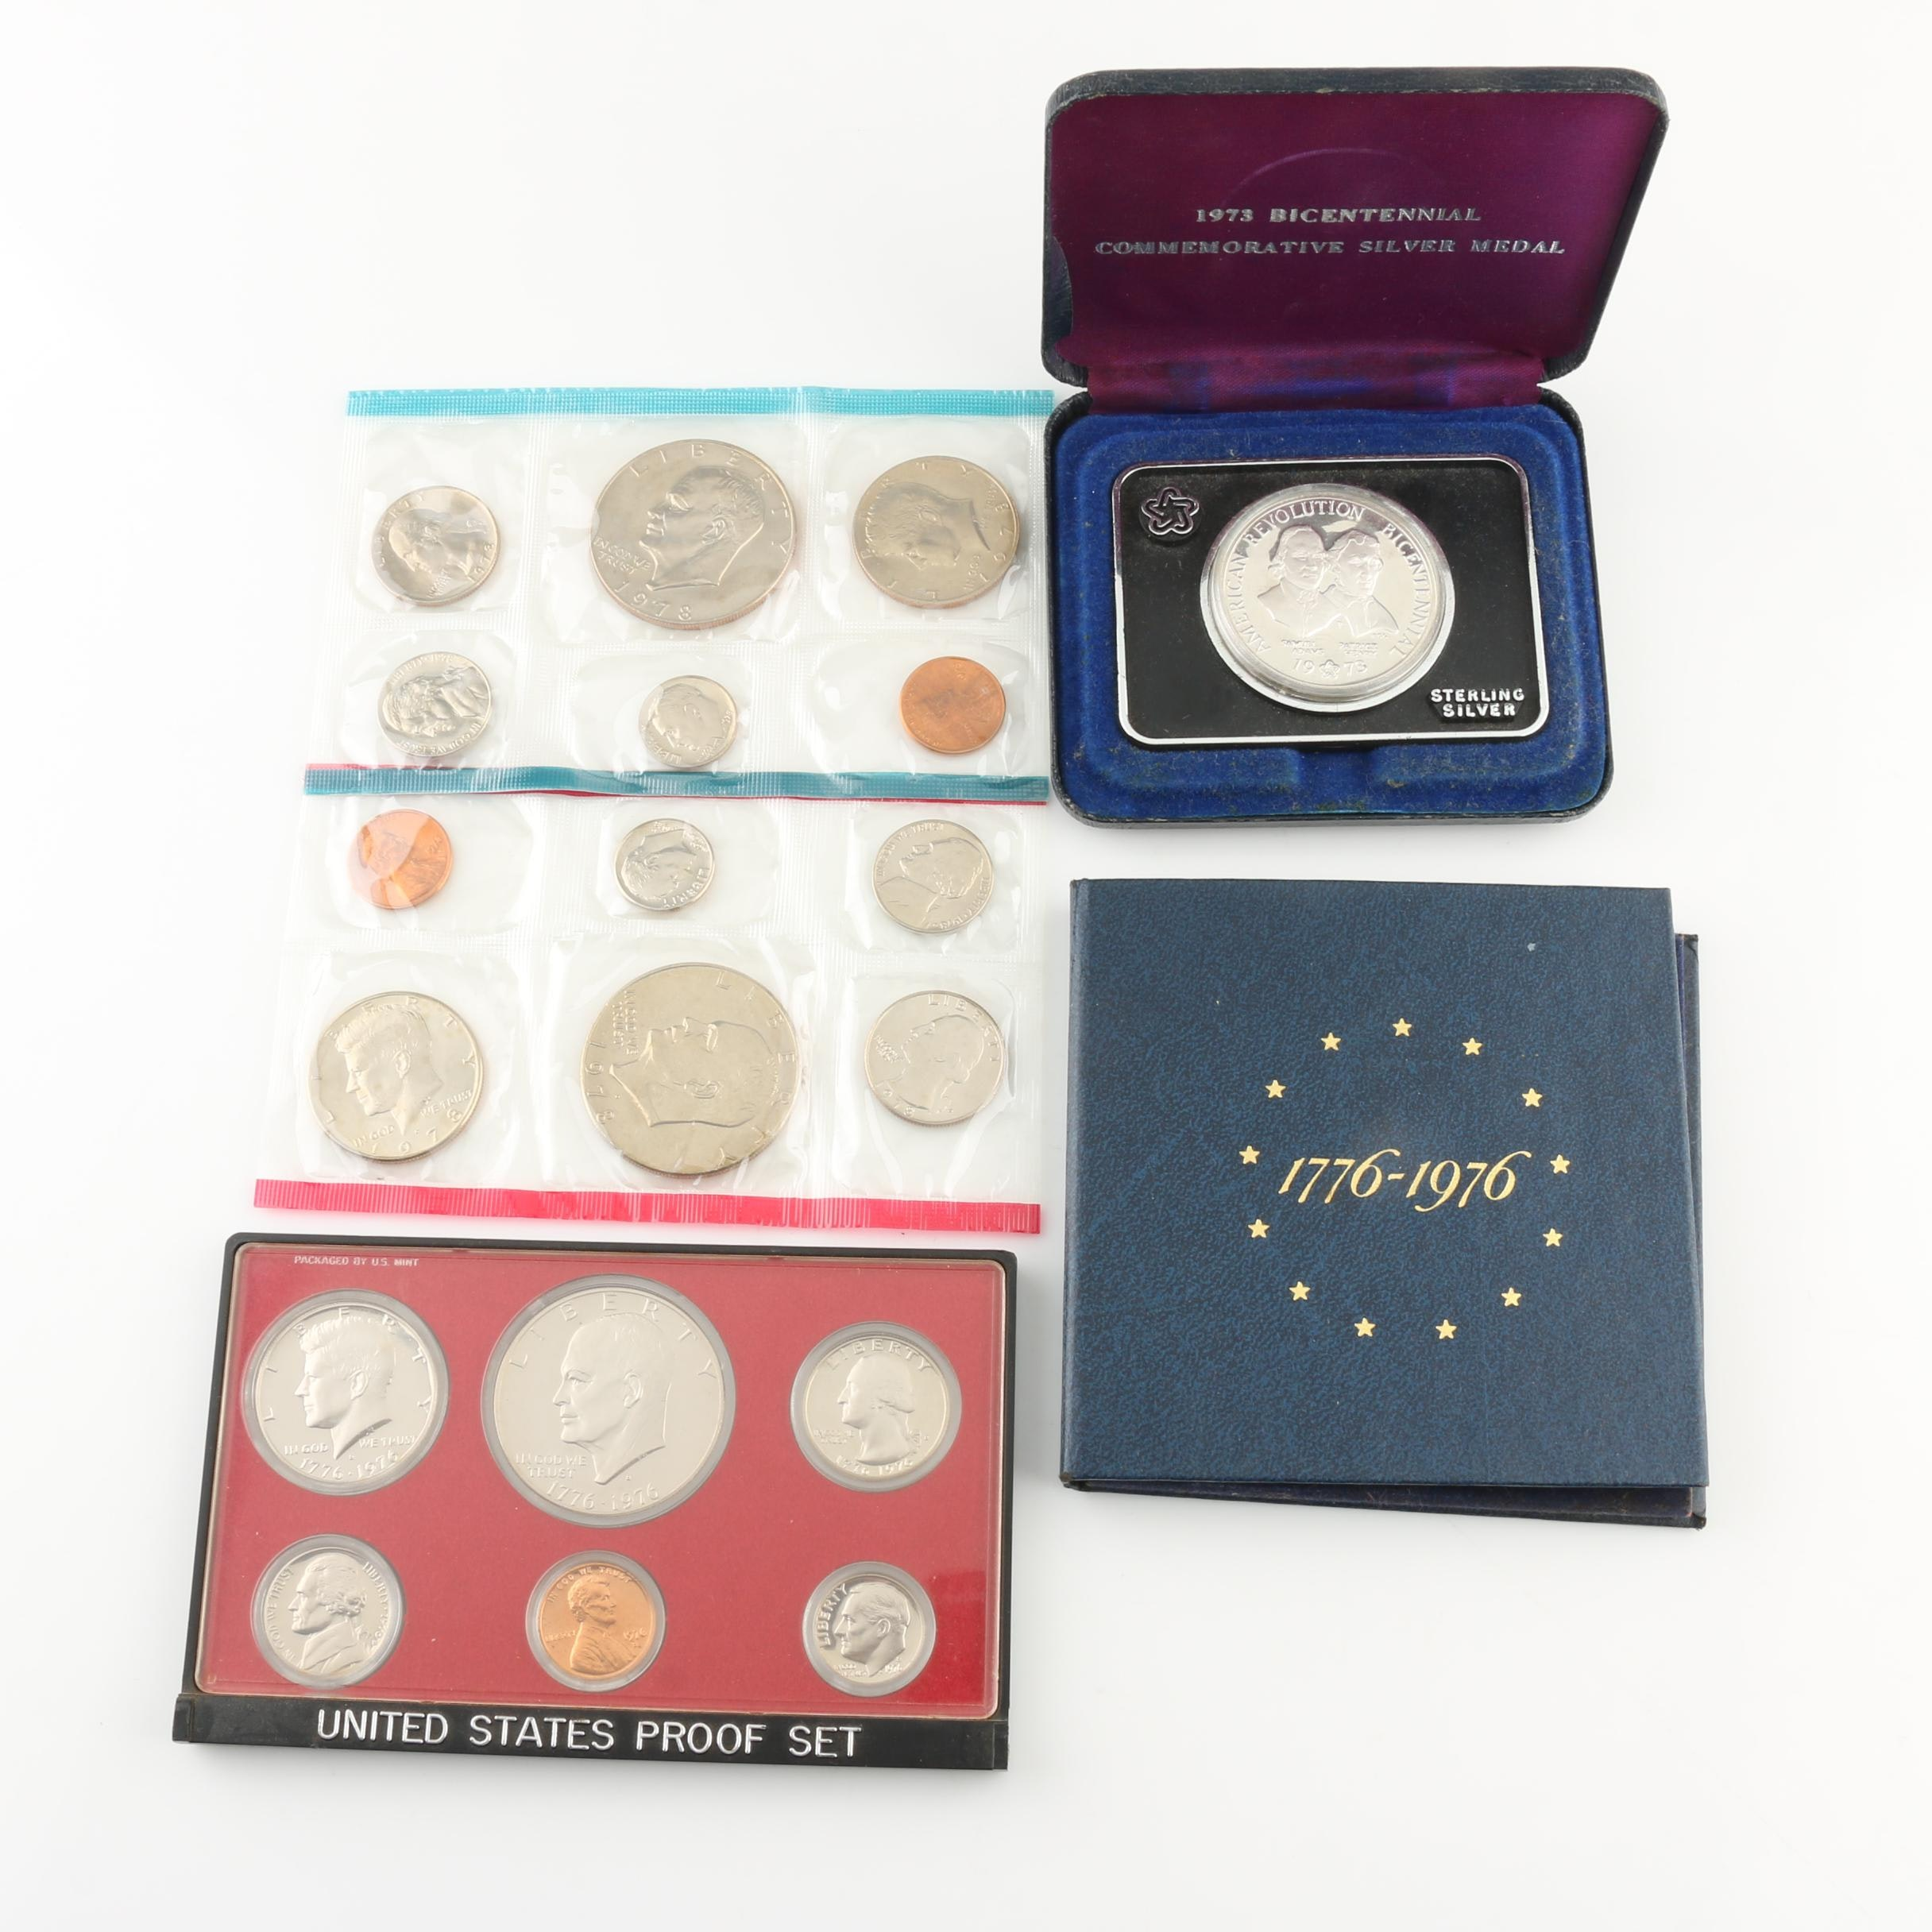 Three U.S. Mint Coin Sets and a Commemorative Bicentennial Silver Coin